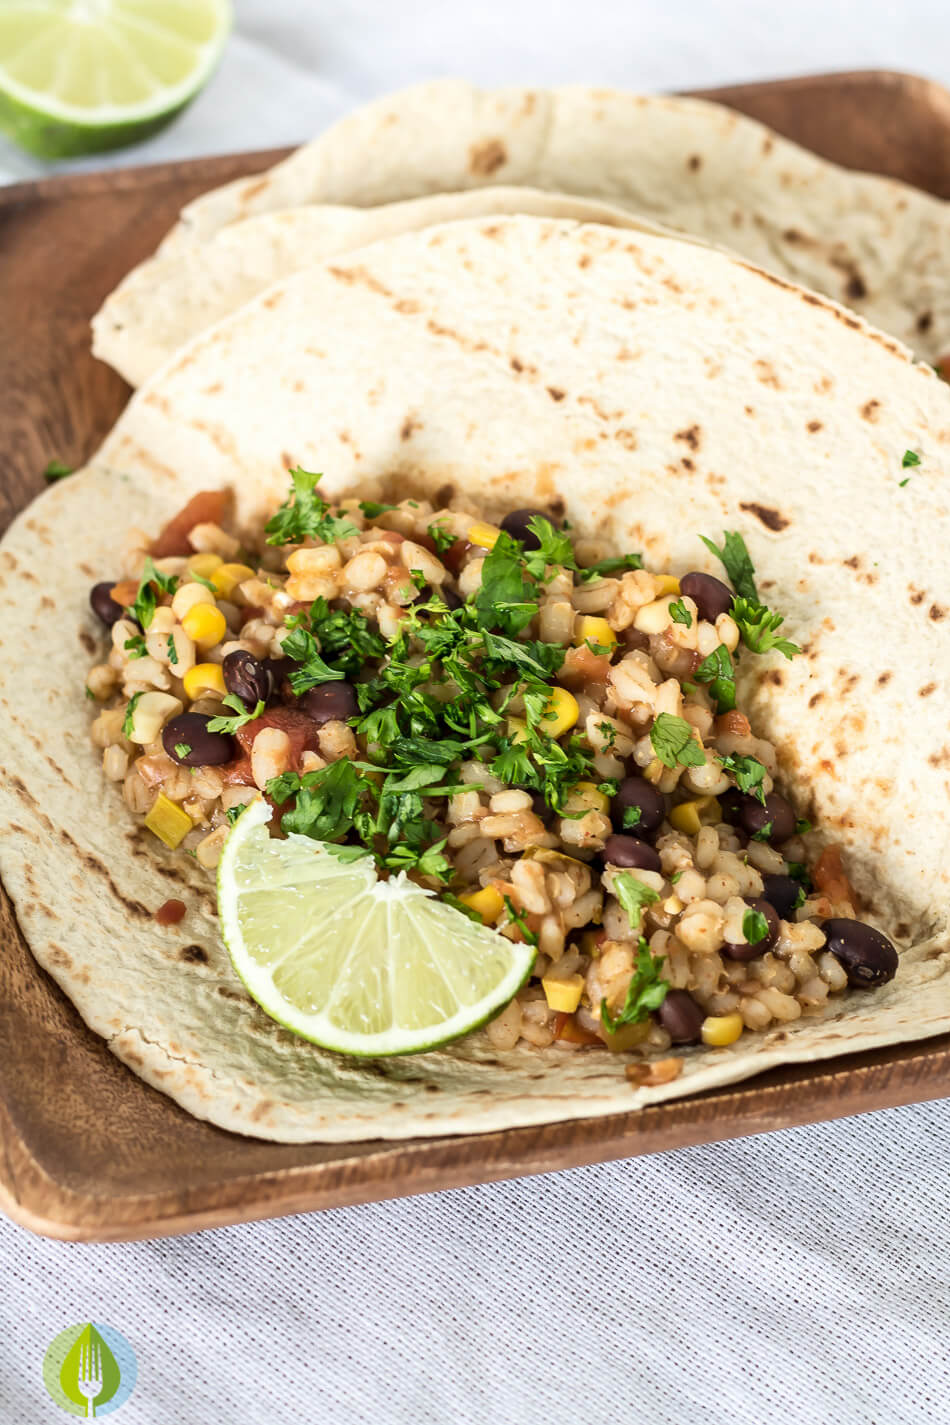 Slow Cooker Black Bean and Barley Burritos